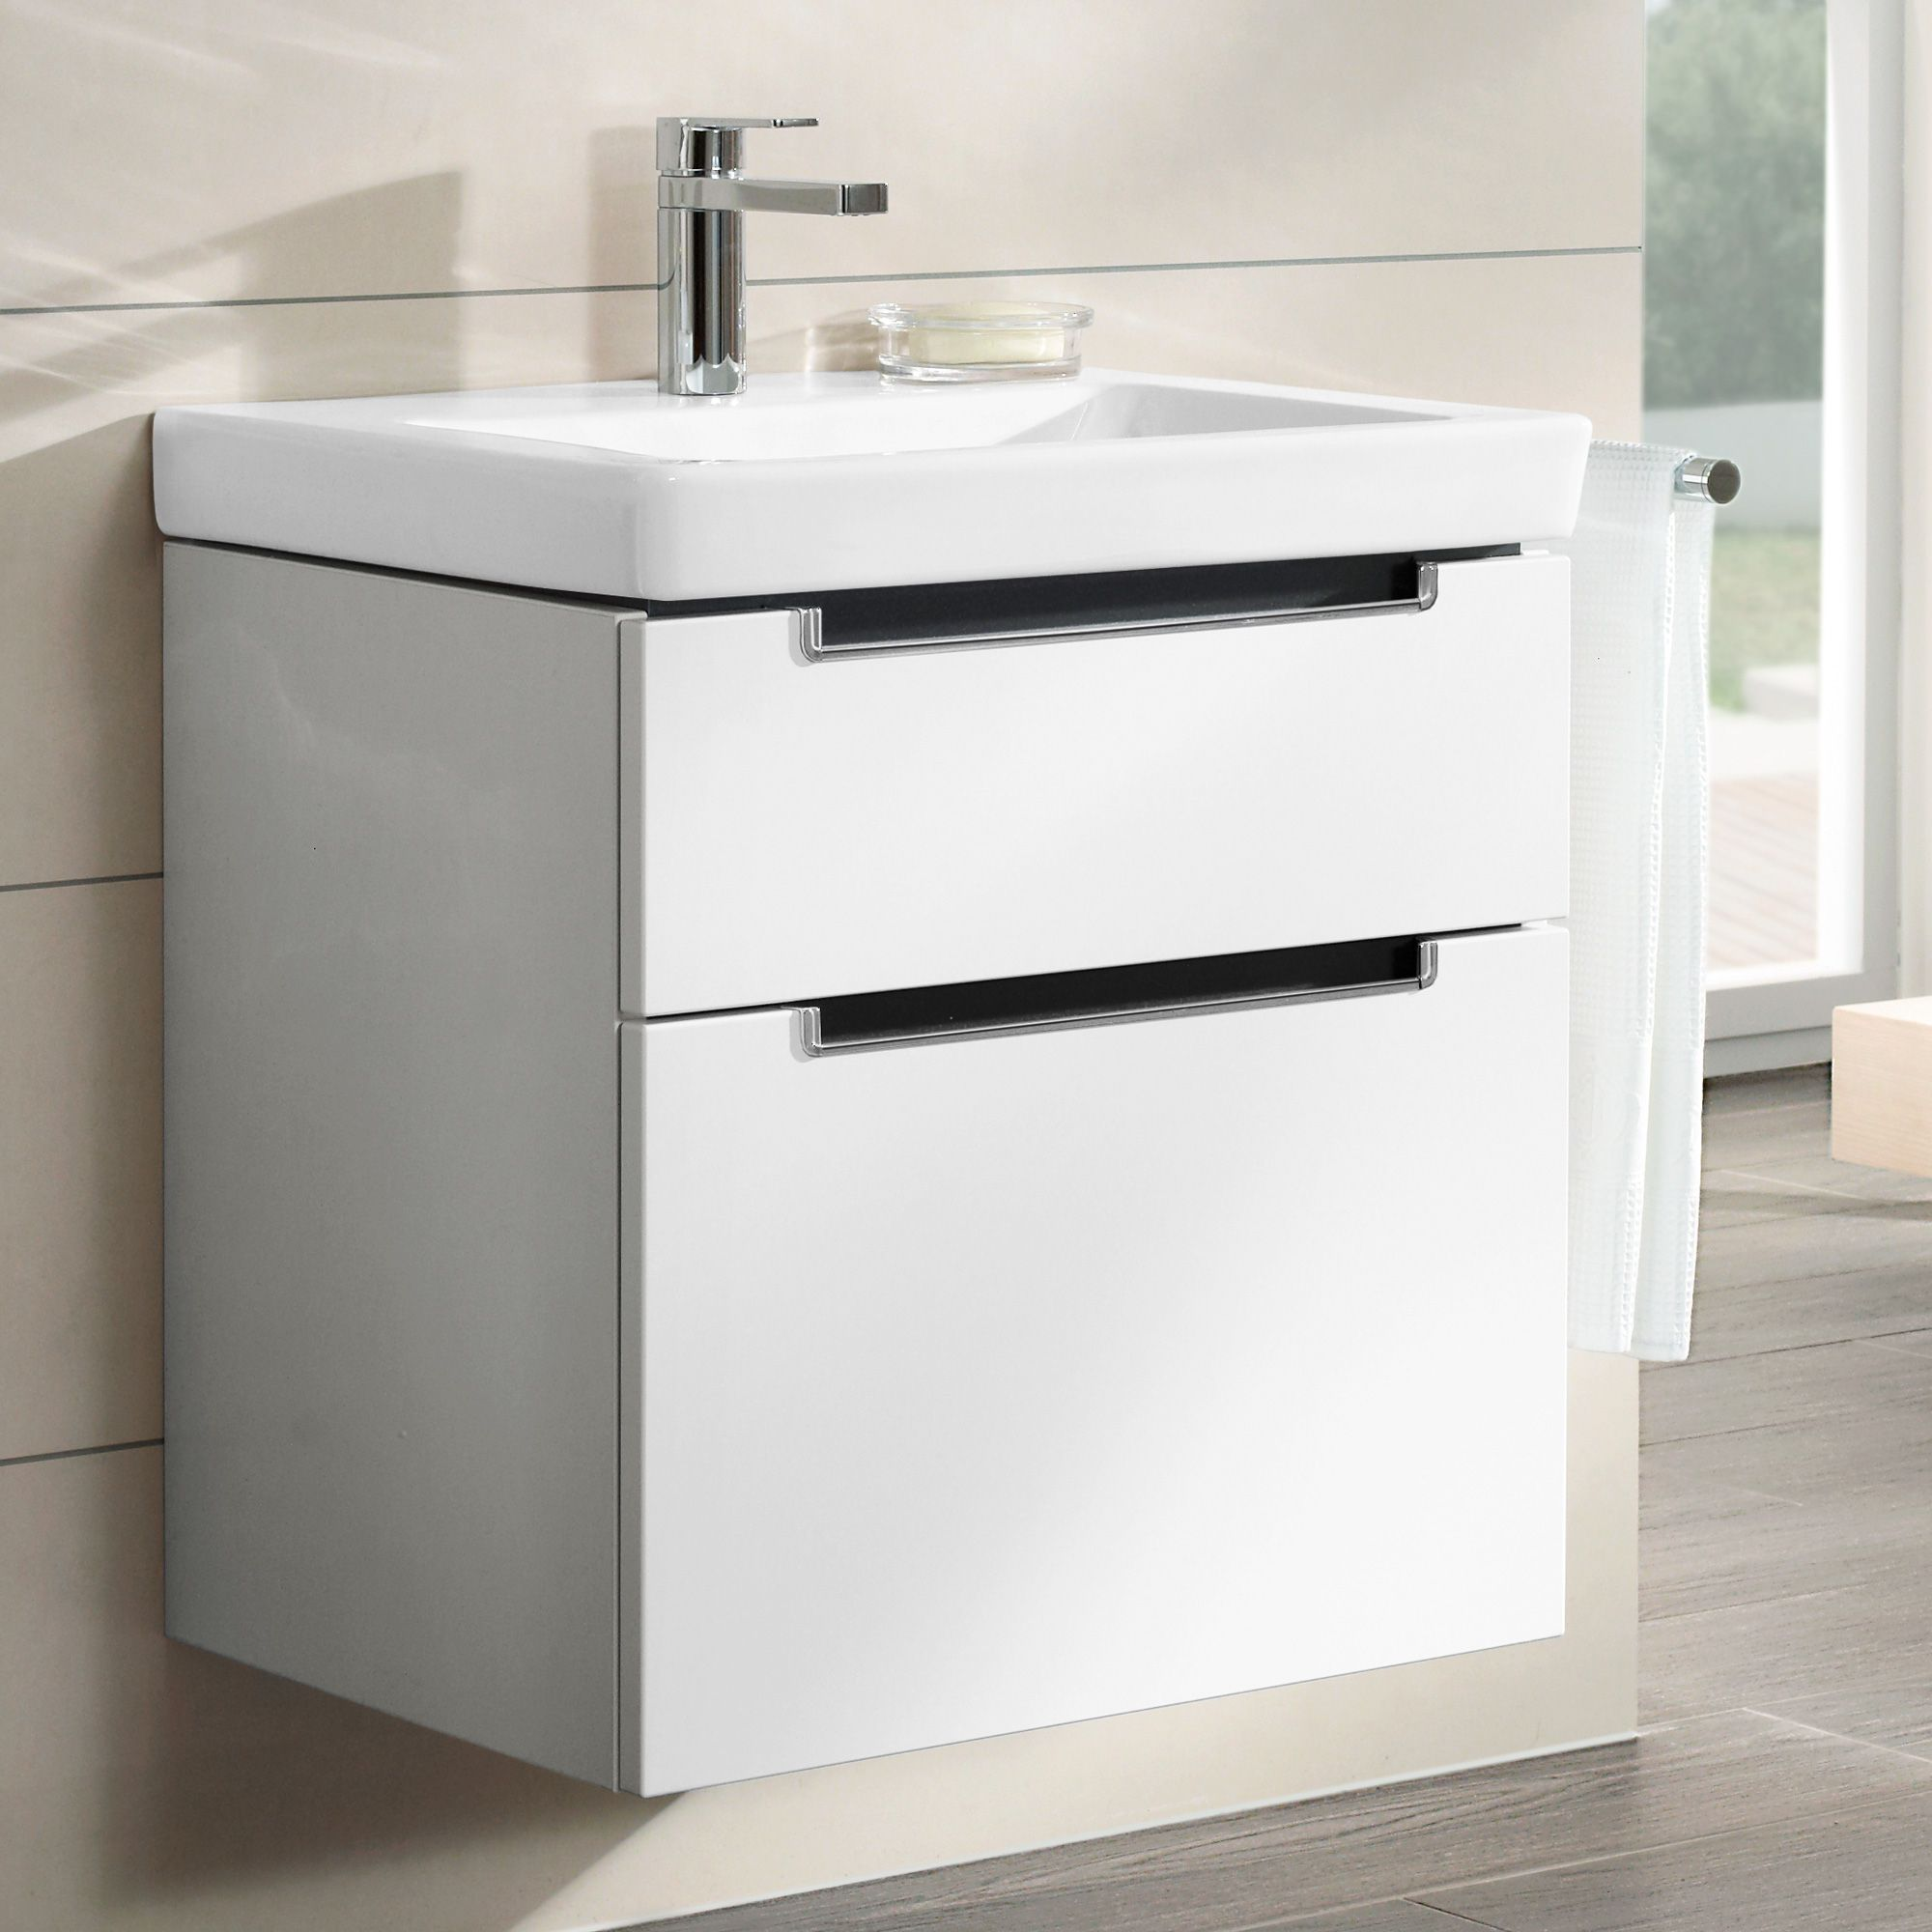 villeroy boch subway 2 0 waschtischunterschrank mit 2 ausz gen glossy white bath. Black Bedroom Furniture Sets. Home Design Ideas